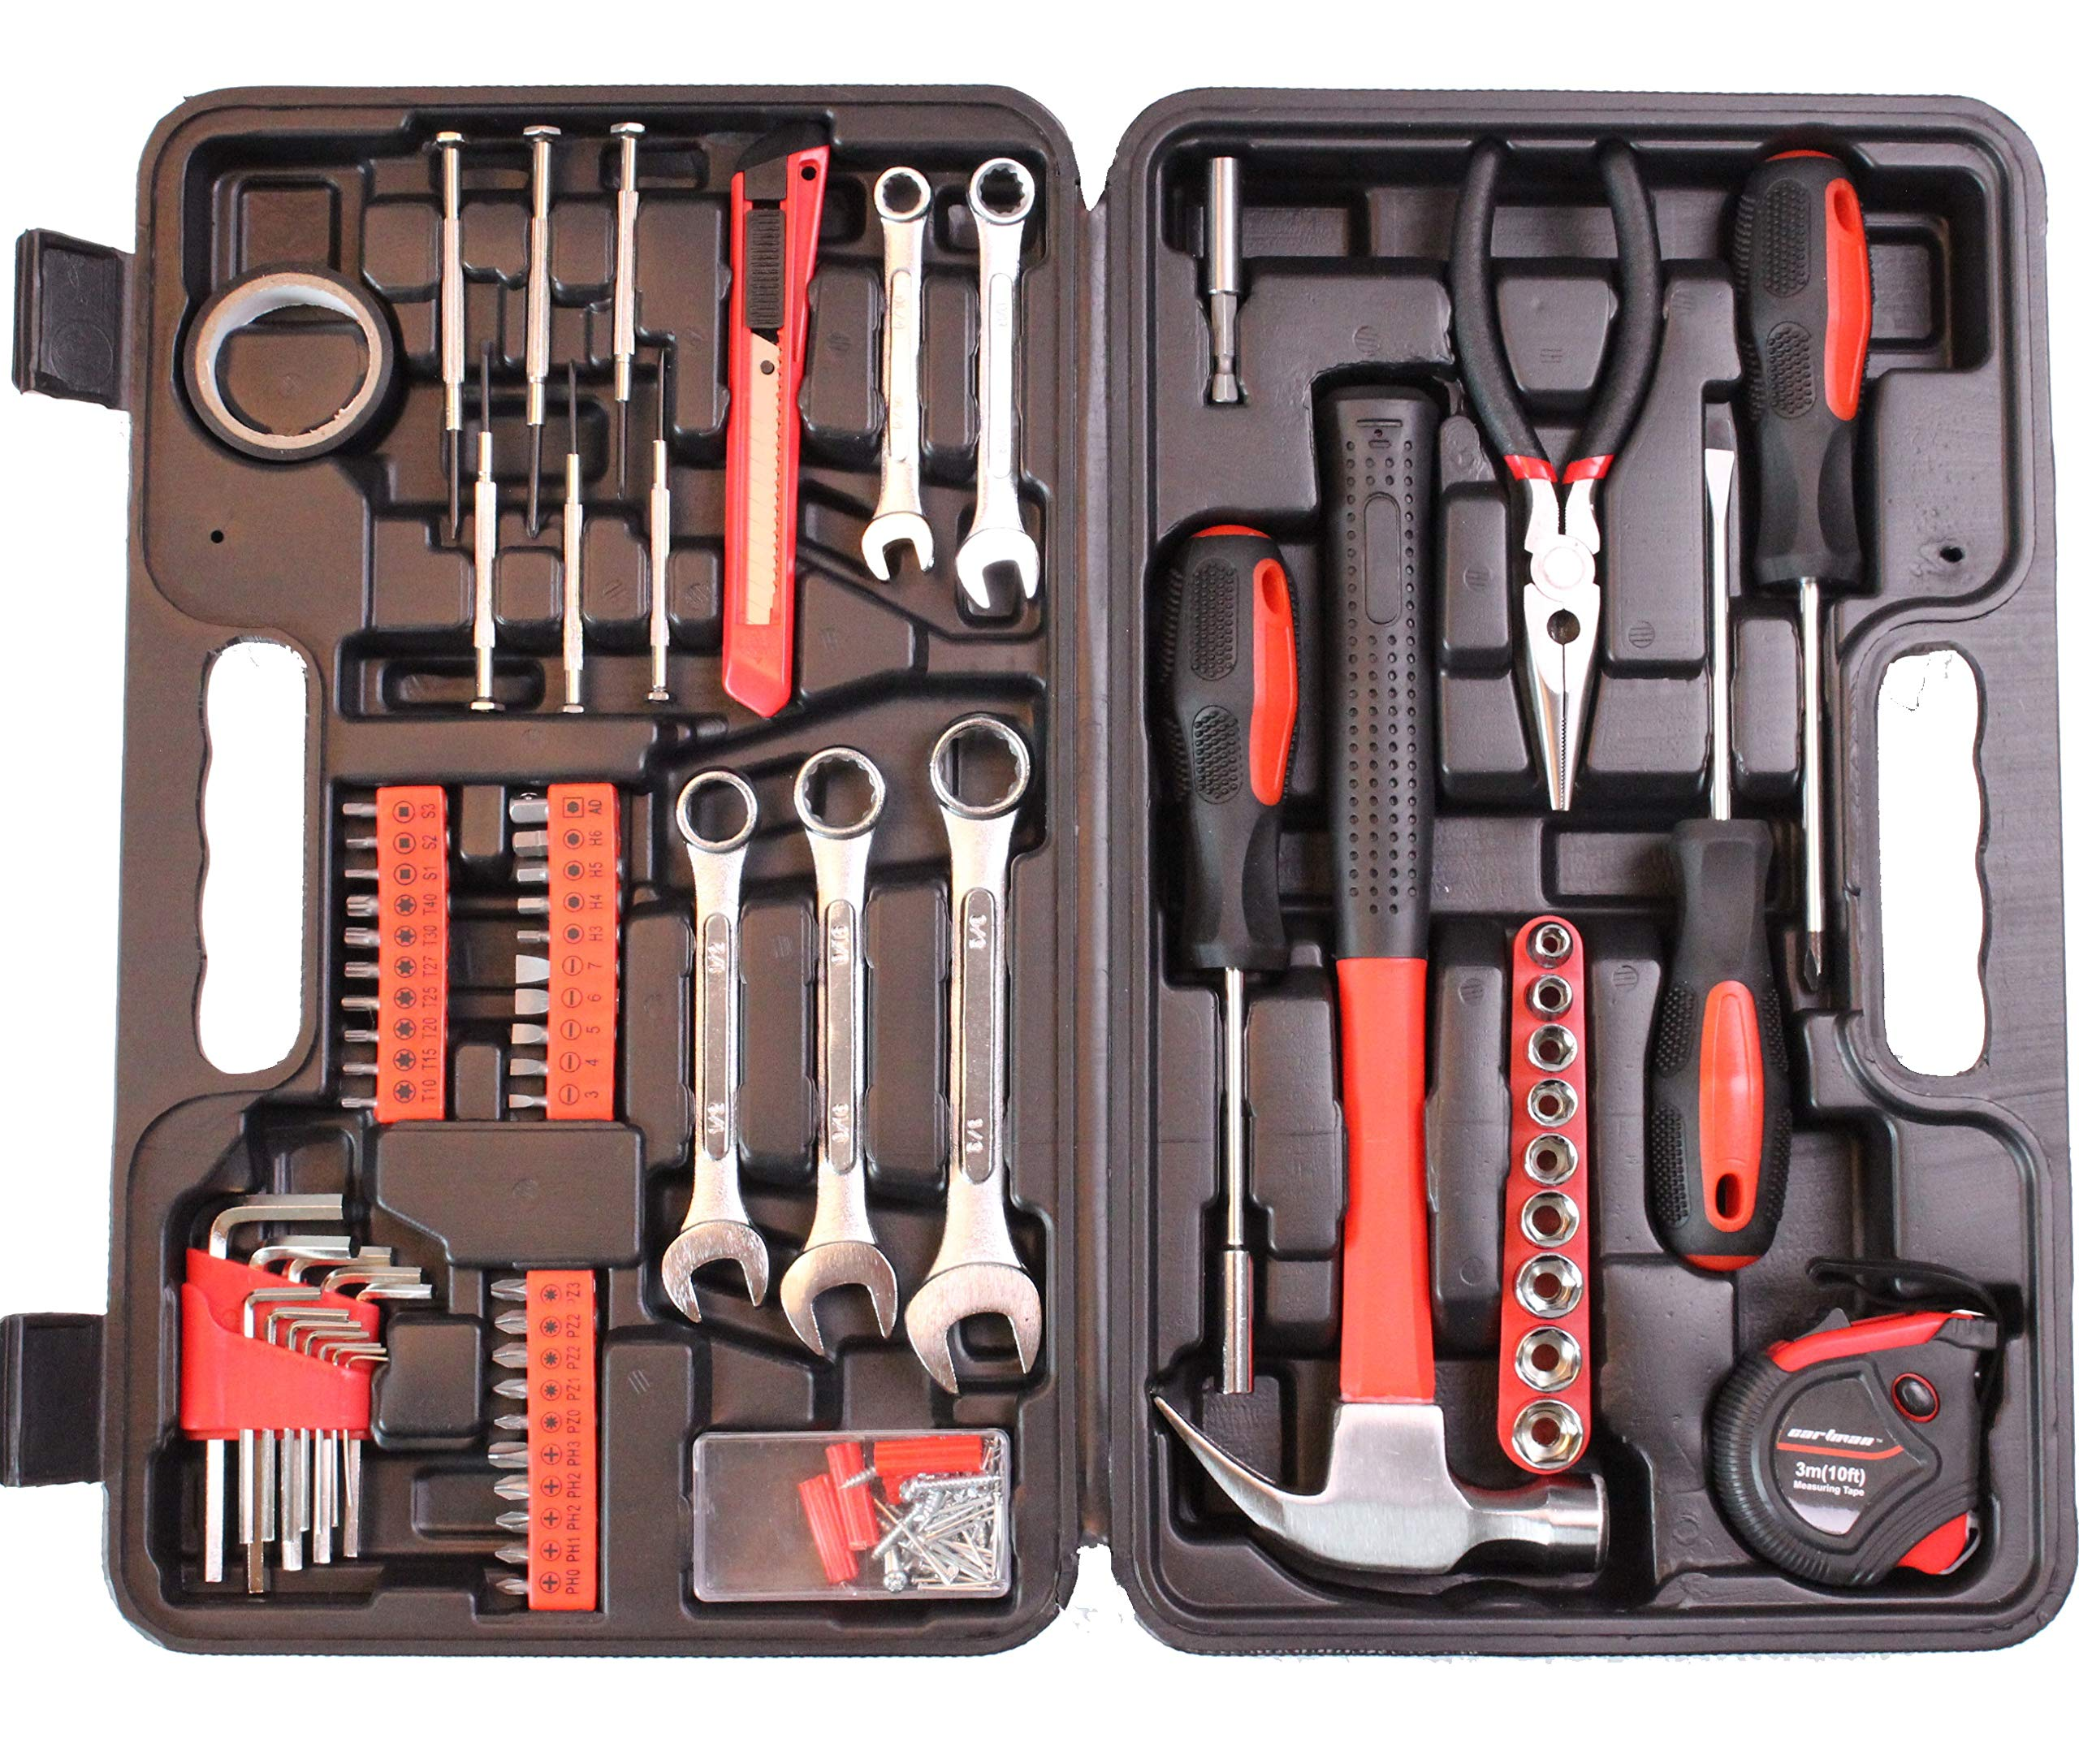 CARTMAN 148-Piece Tool Set - General Household Hand Tool Kit with Plastic Toolbox Storage Case by CARTMAN